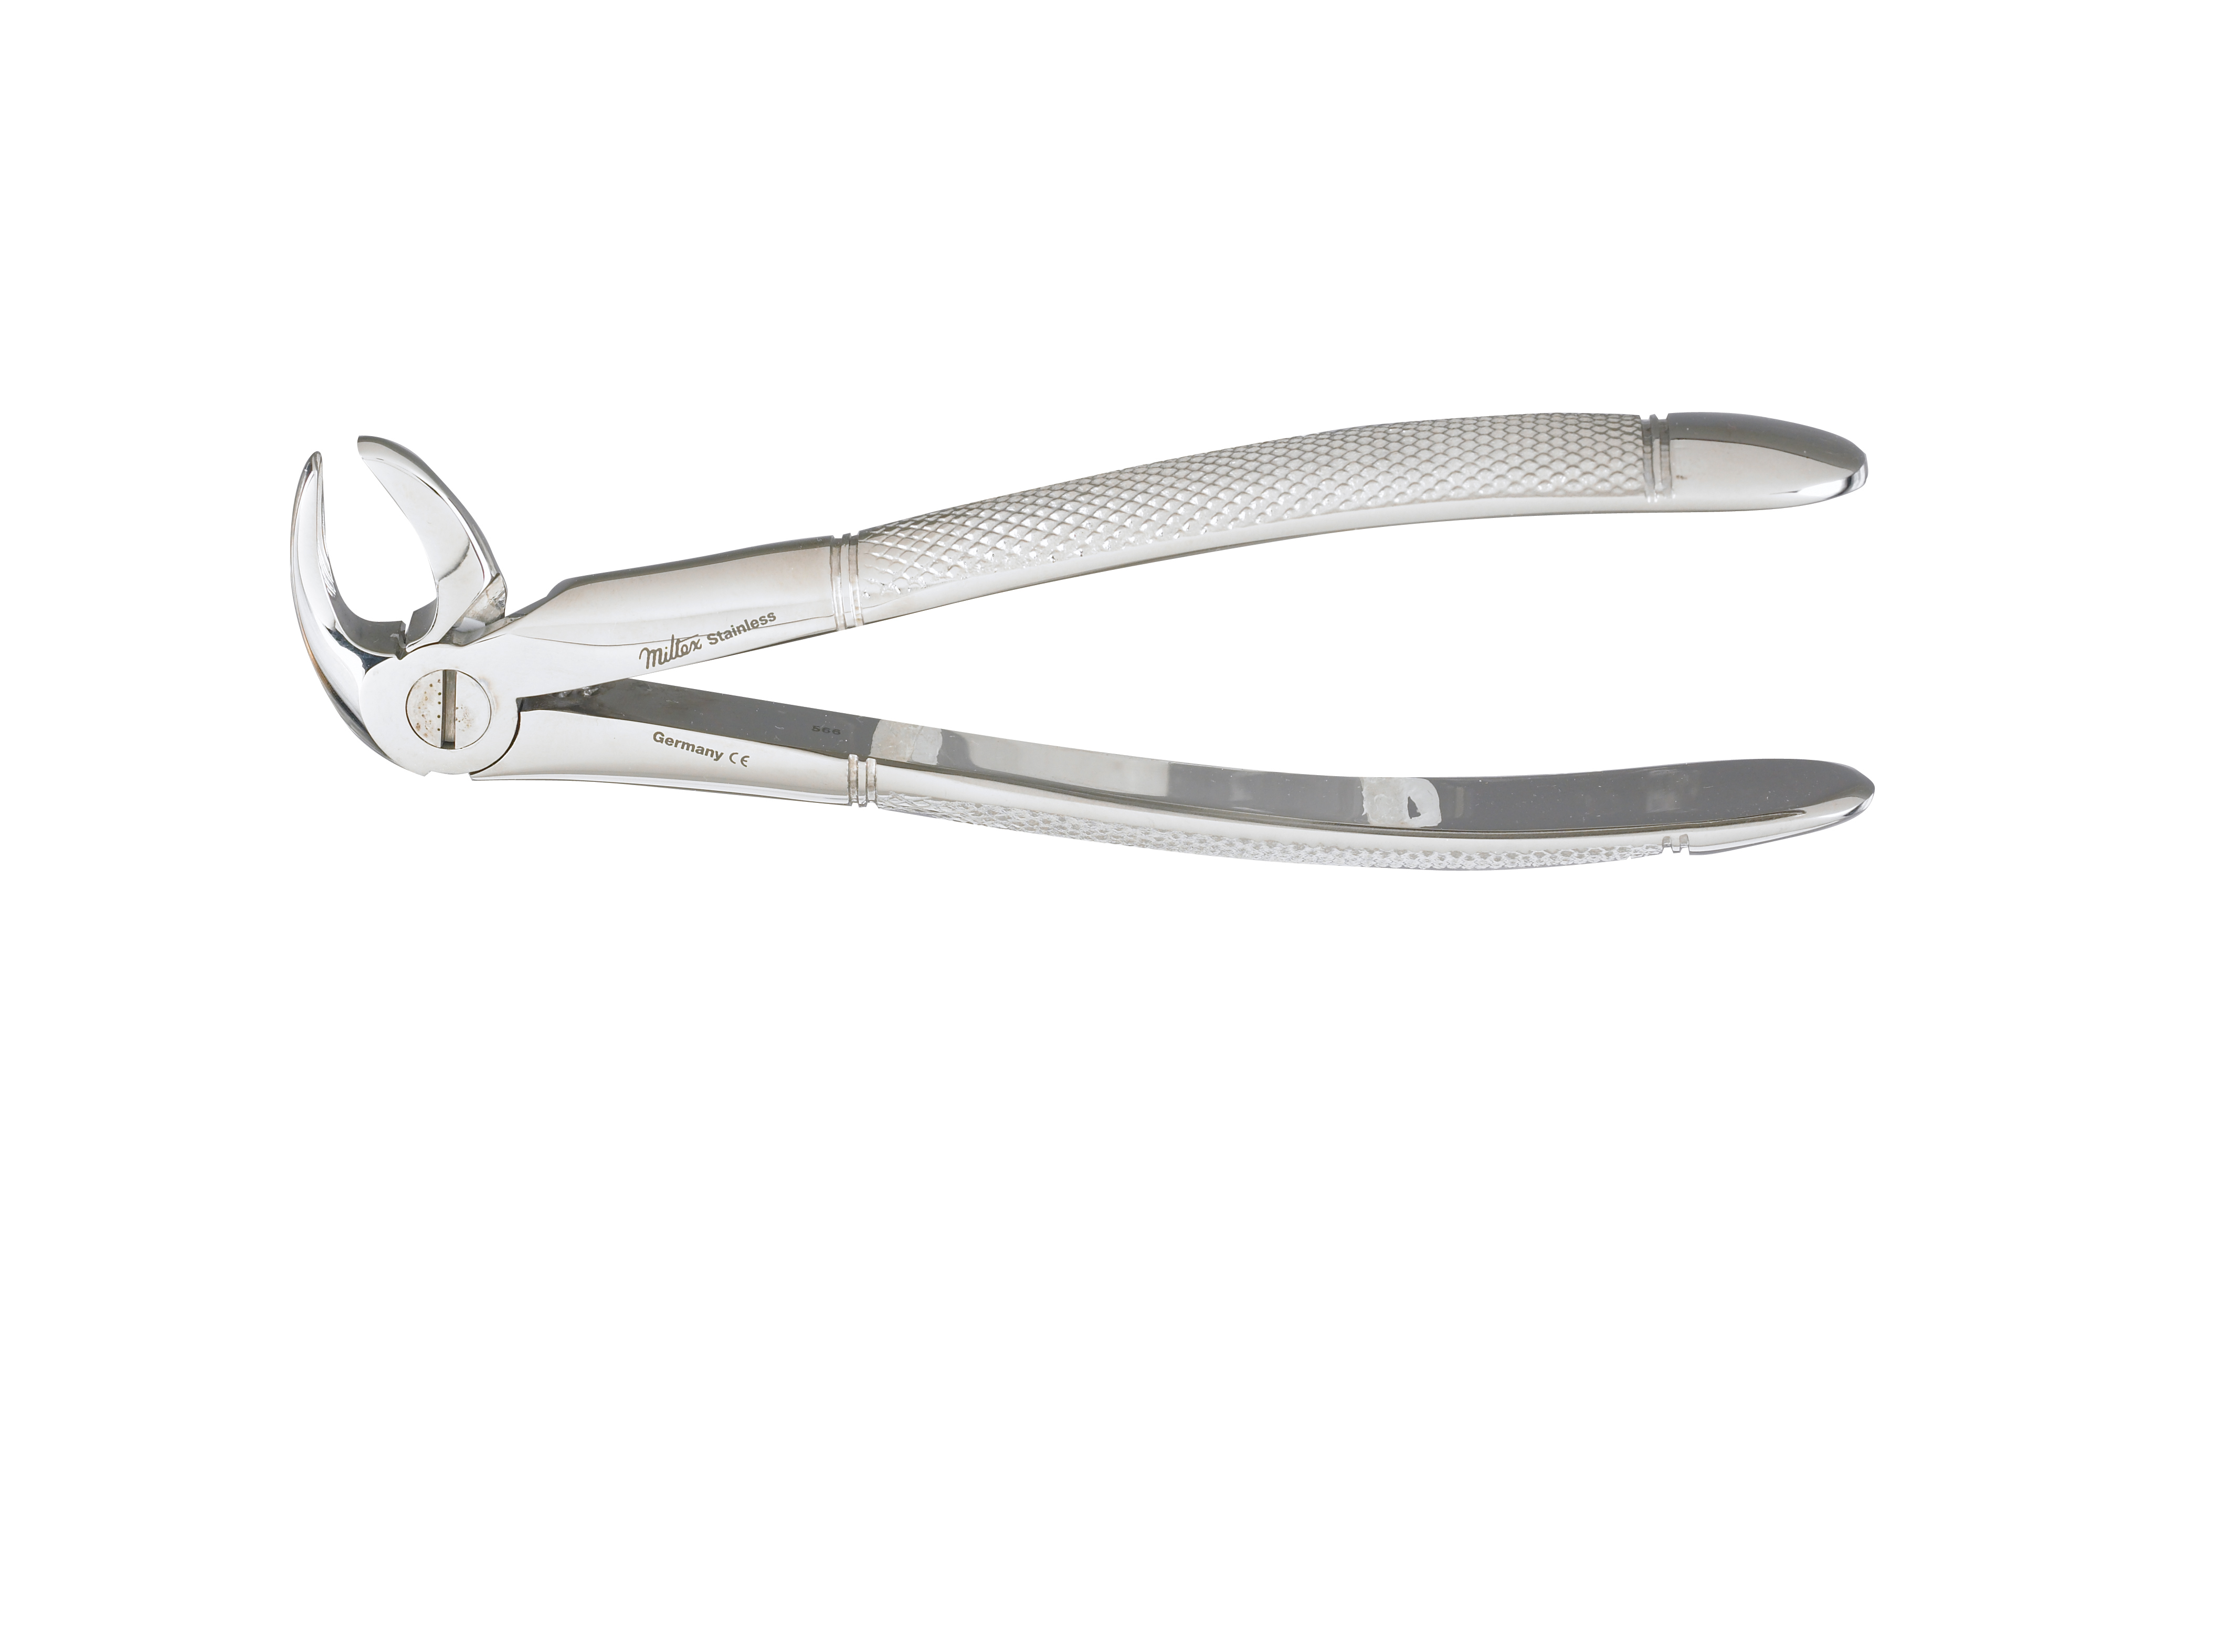 33-extracting-forceps-english-pattern-def33-miltex.jpg